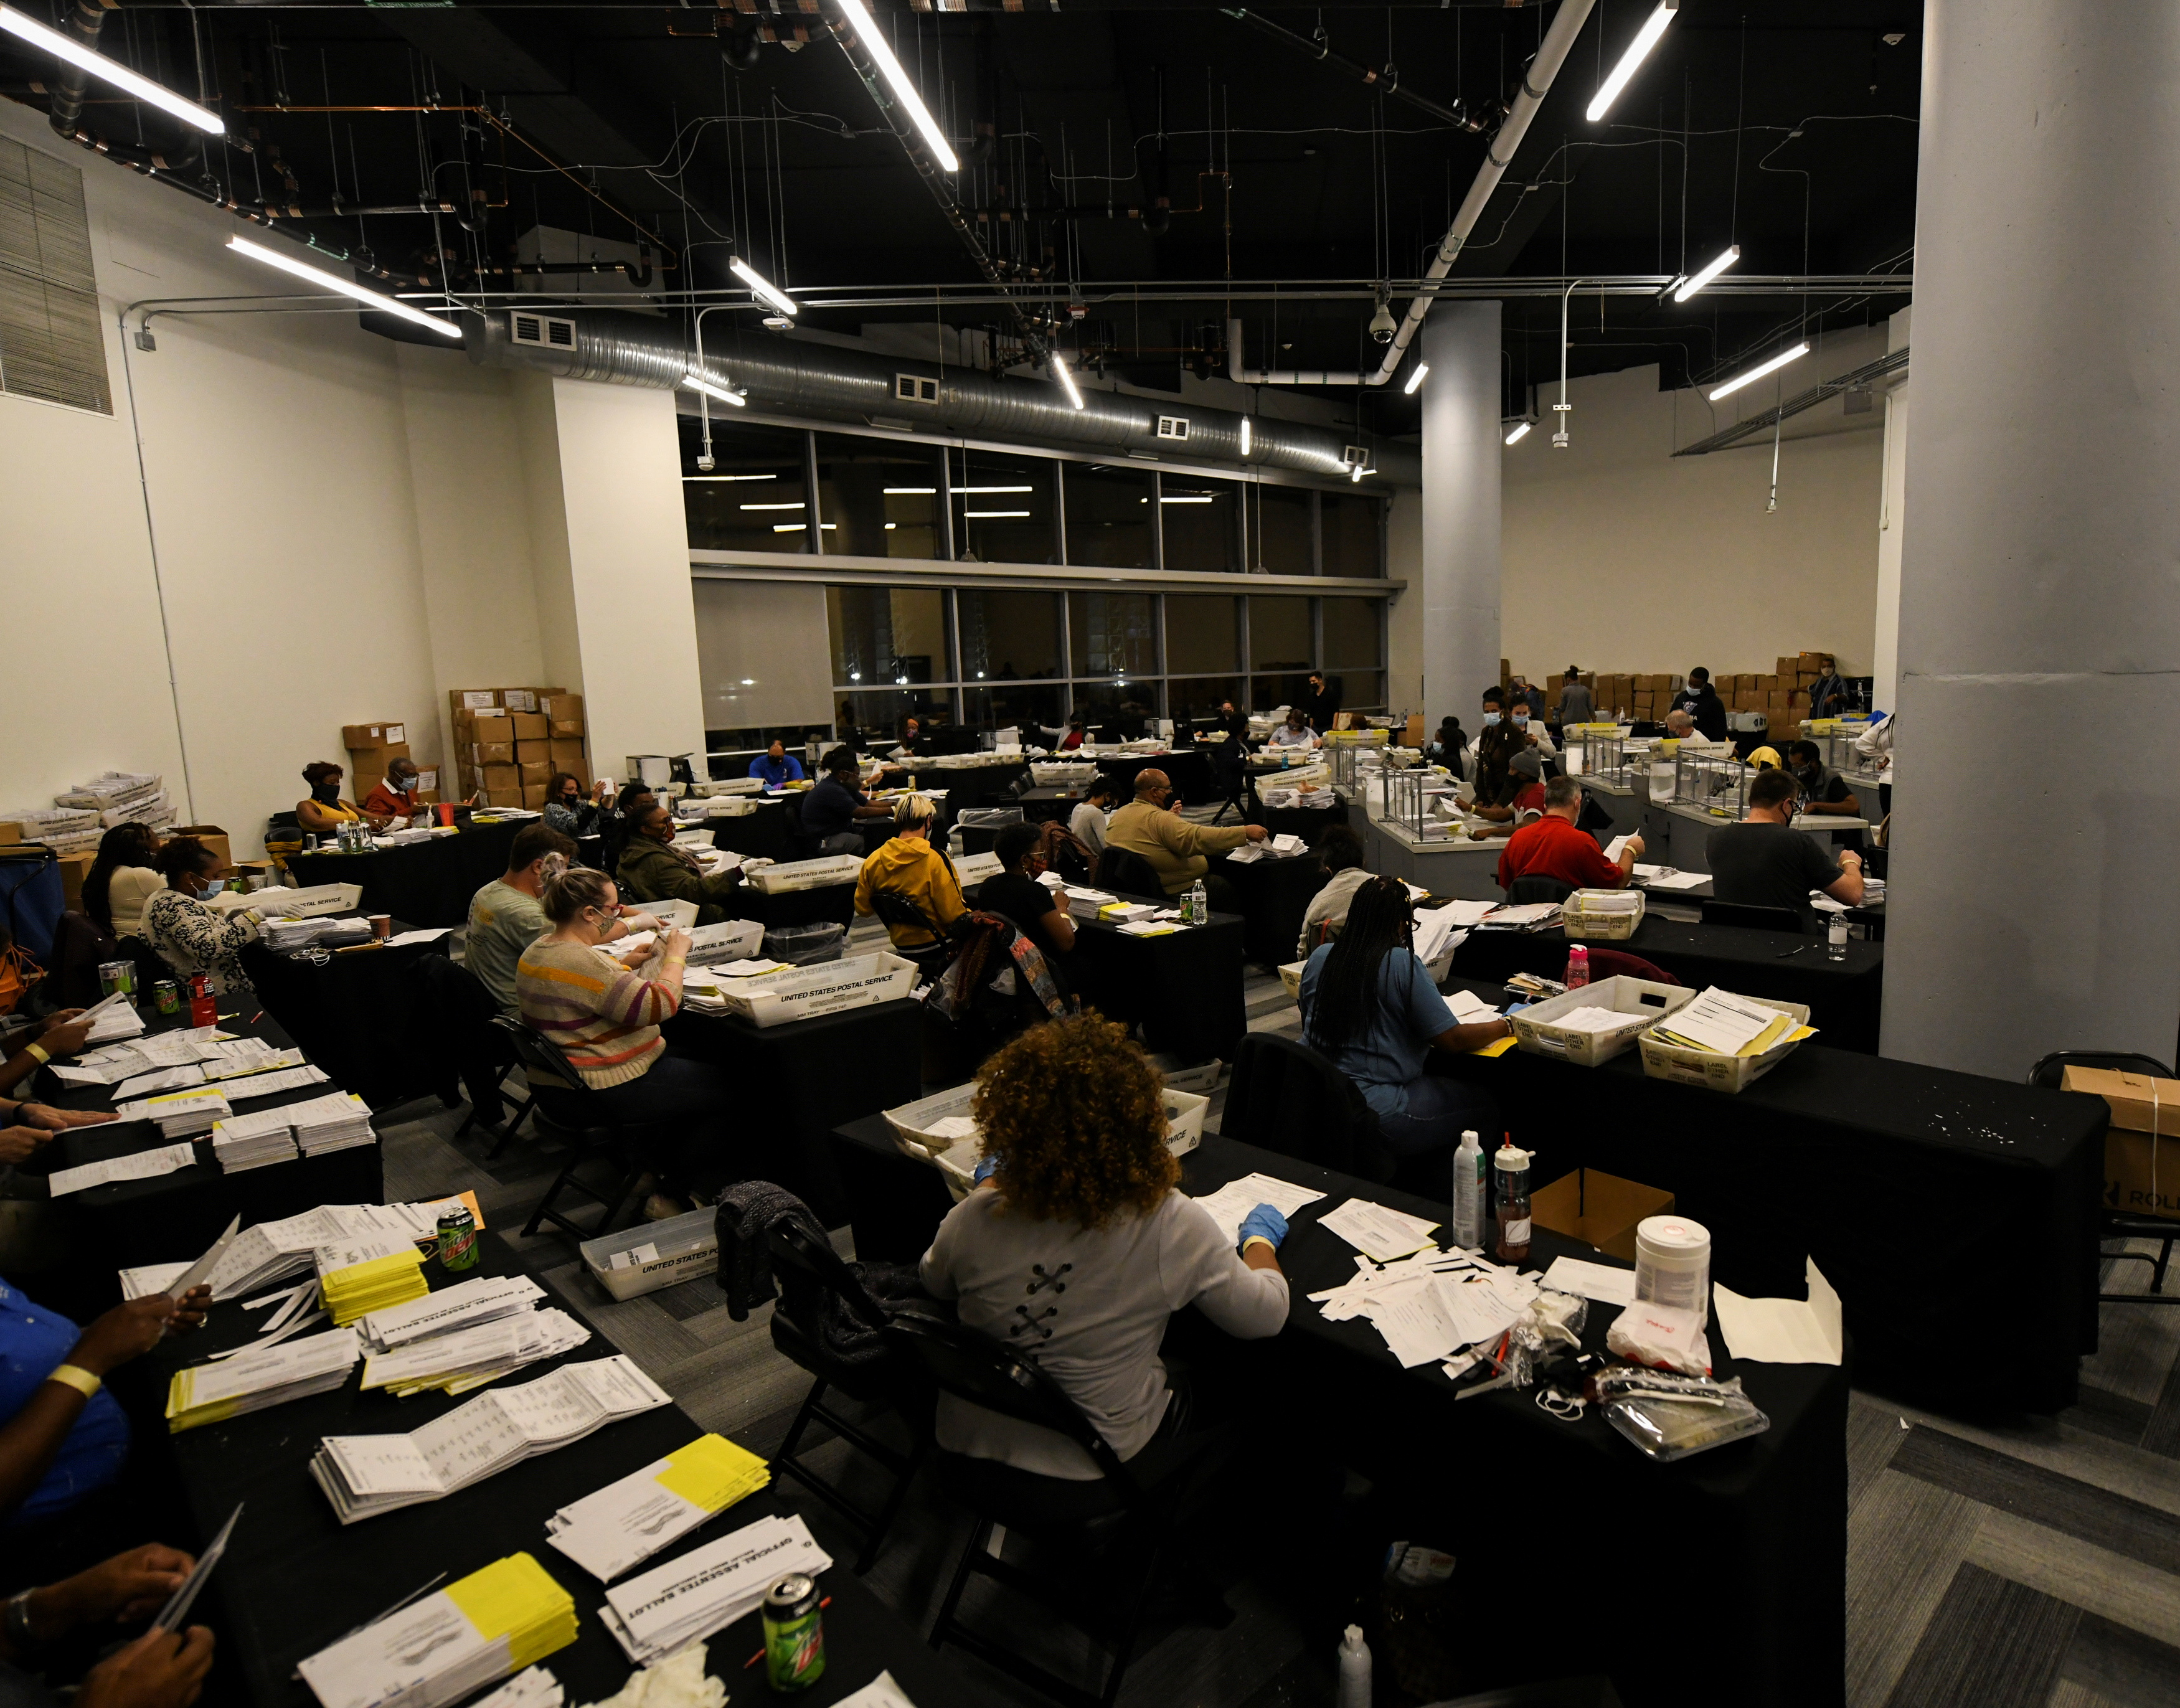 Employees of the Fulton County Board of Registration and Elections process ballots in Atlanta, Georgia U.S., November 4, 2020. REUTERS/Brandon Bell